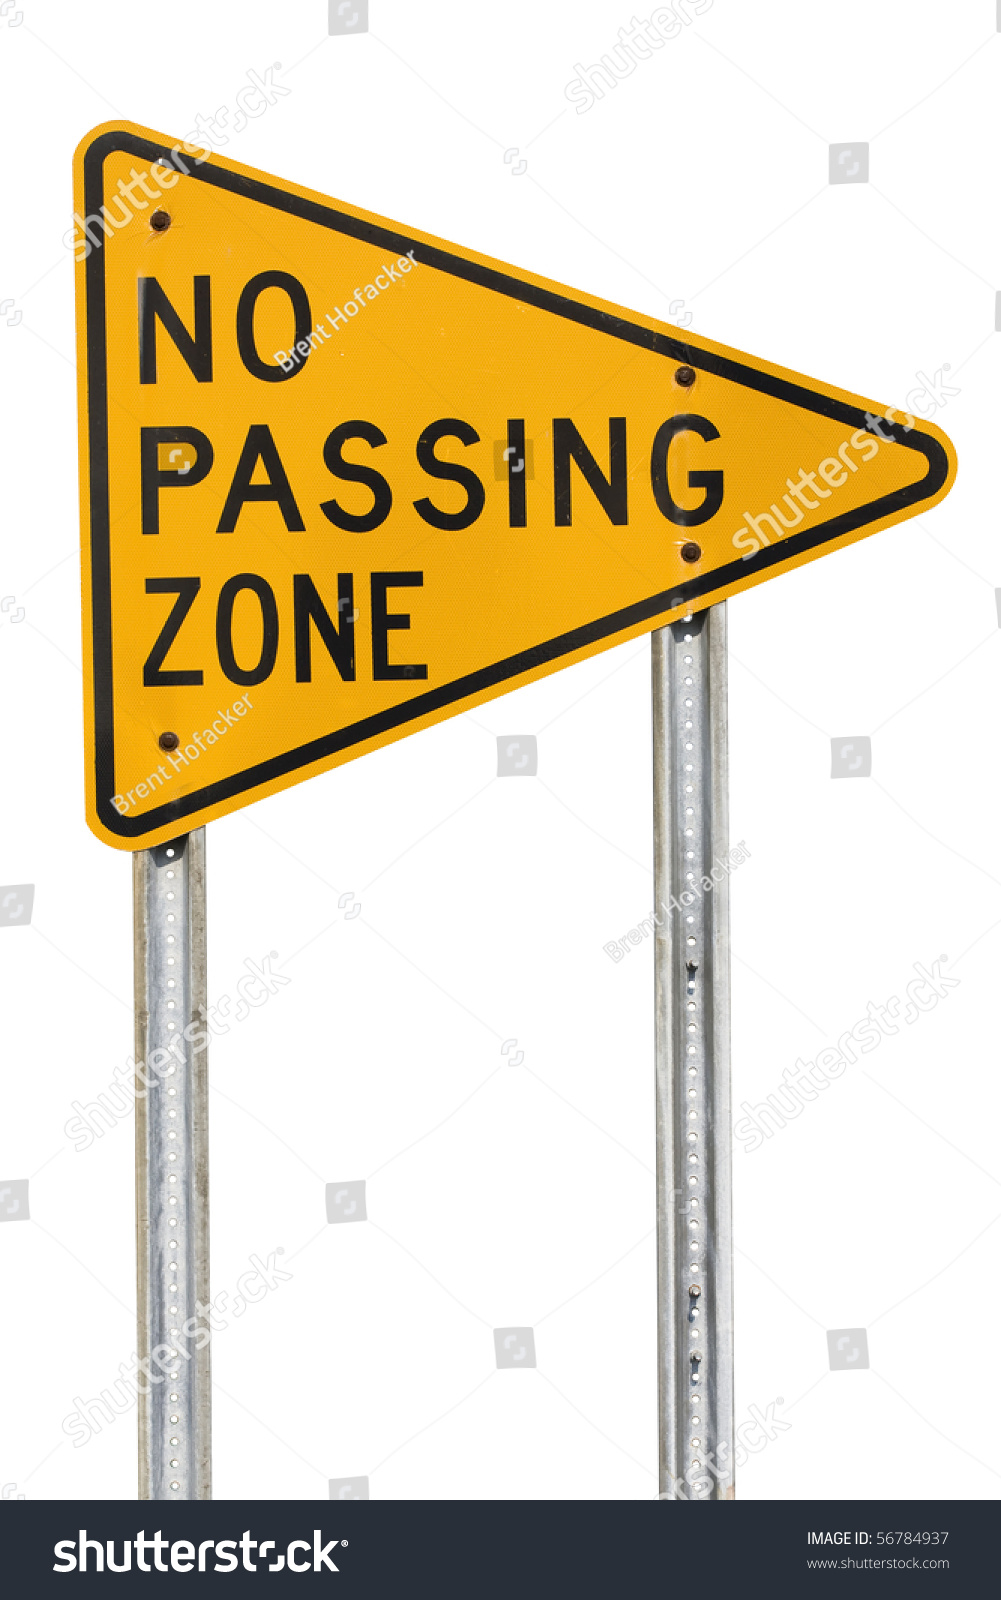 A Yellow No Passing Zone Sign Cutout Stock Photo 56784937 ...